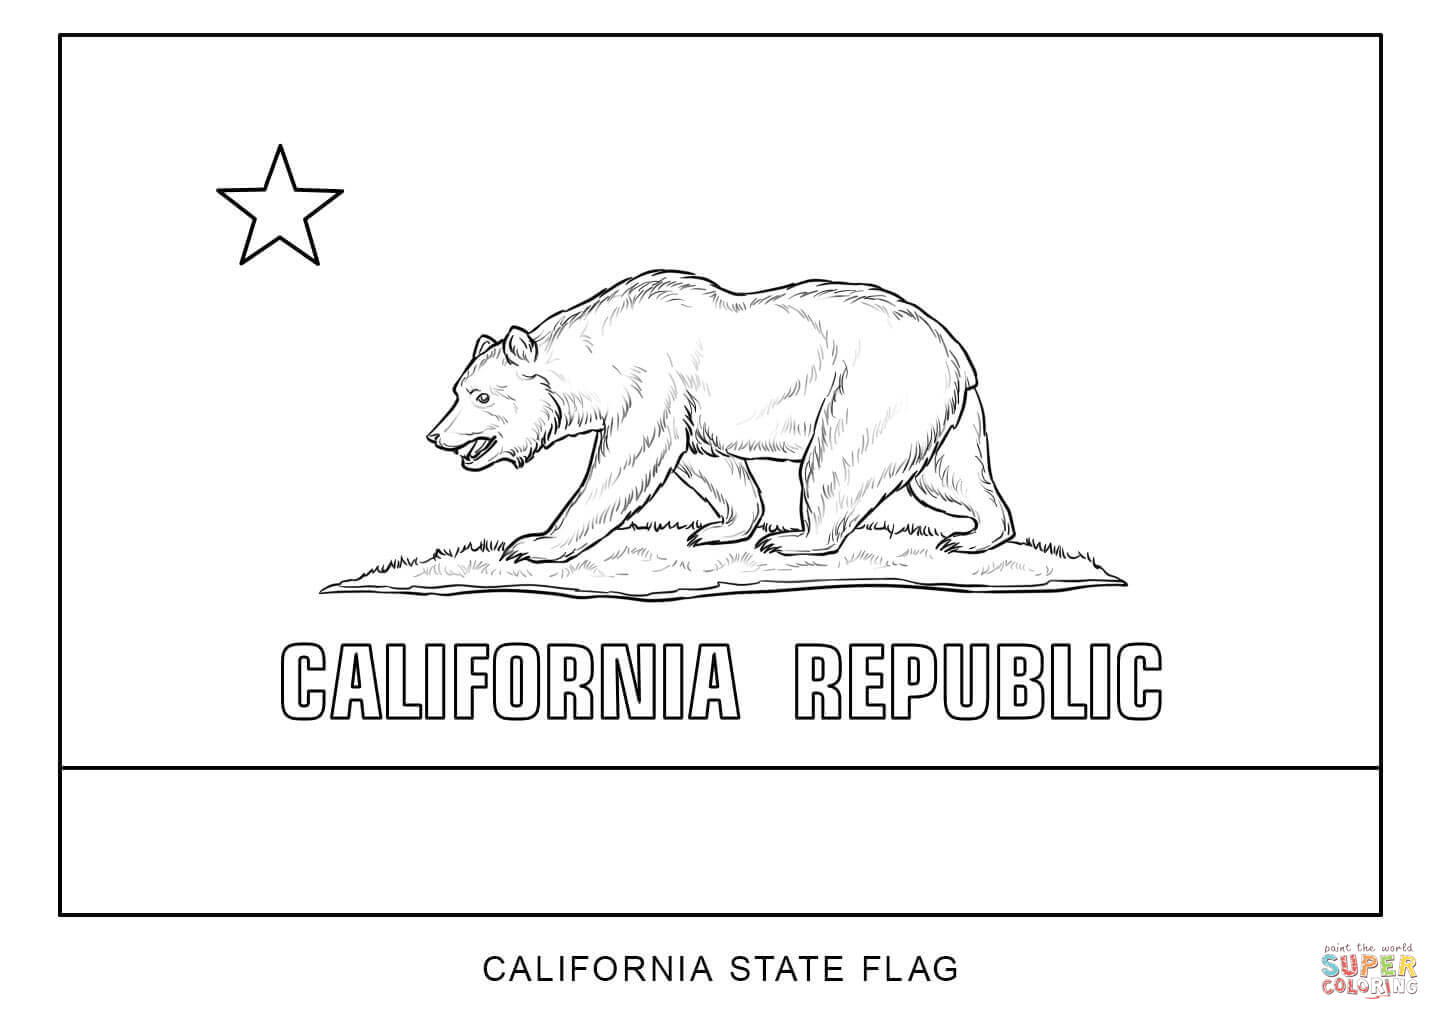 california state flag coloring page california state flag coloring page coloring home flag coloring state california page